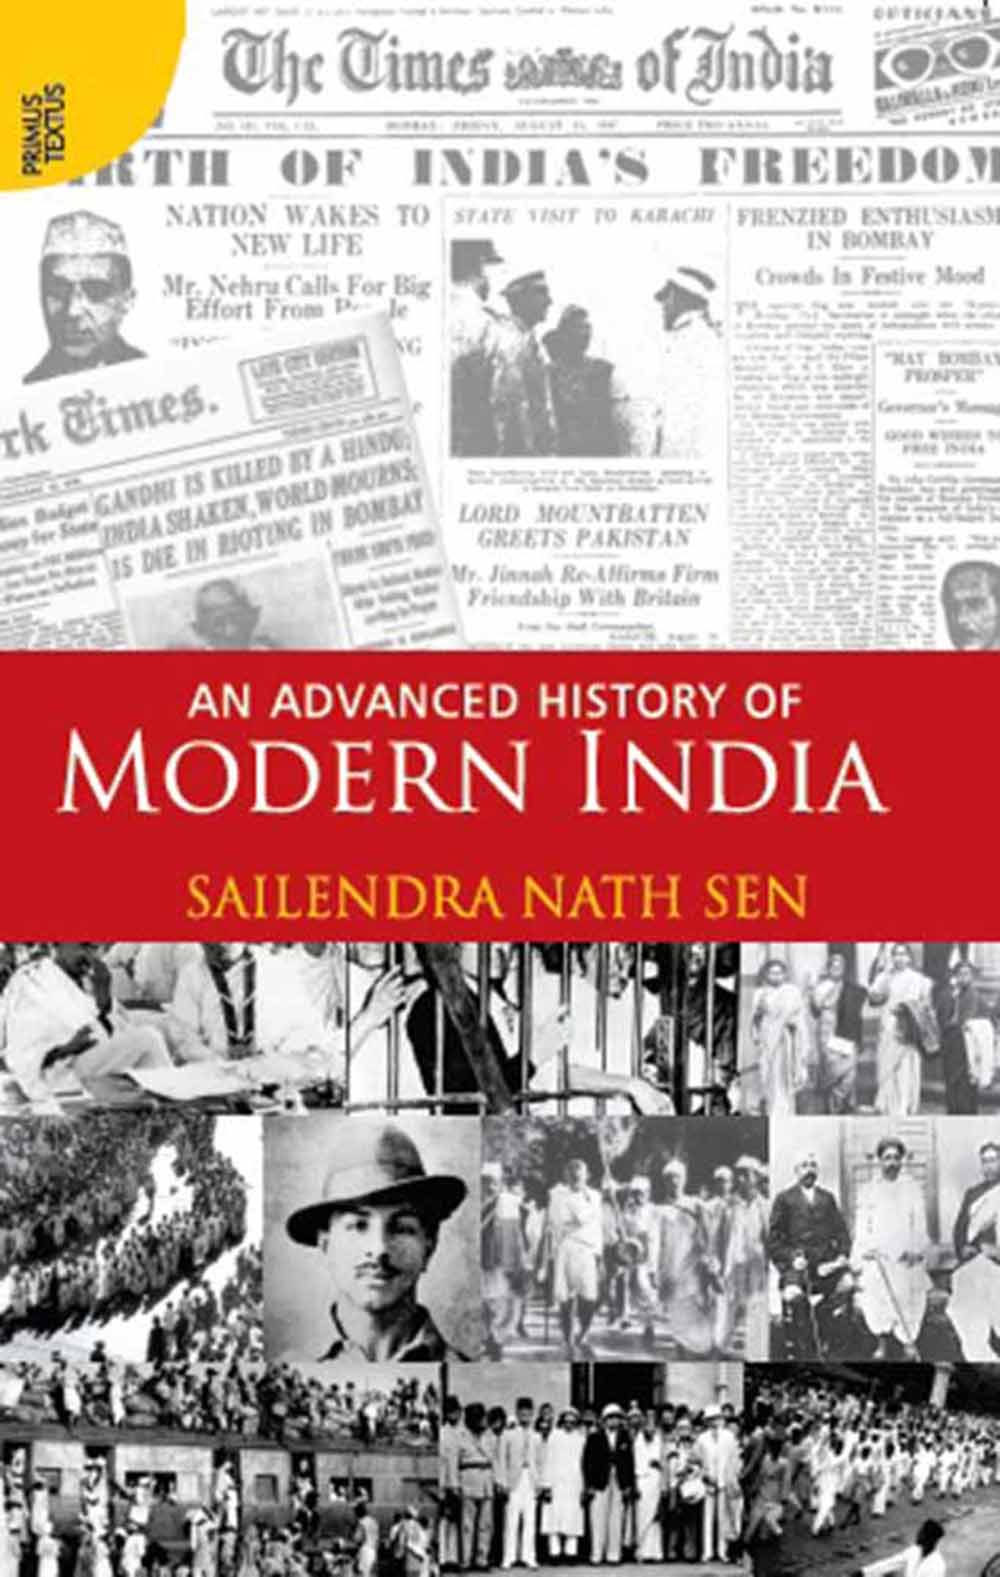 An Advance History of Modern India